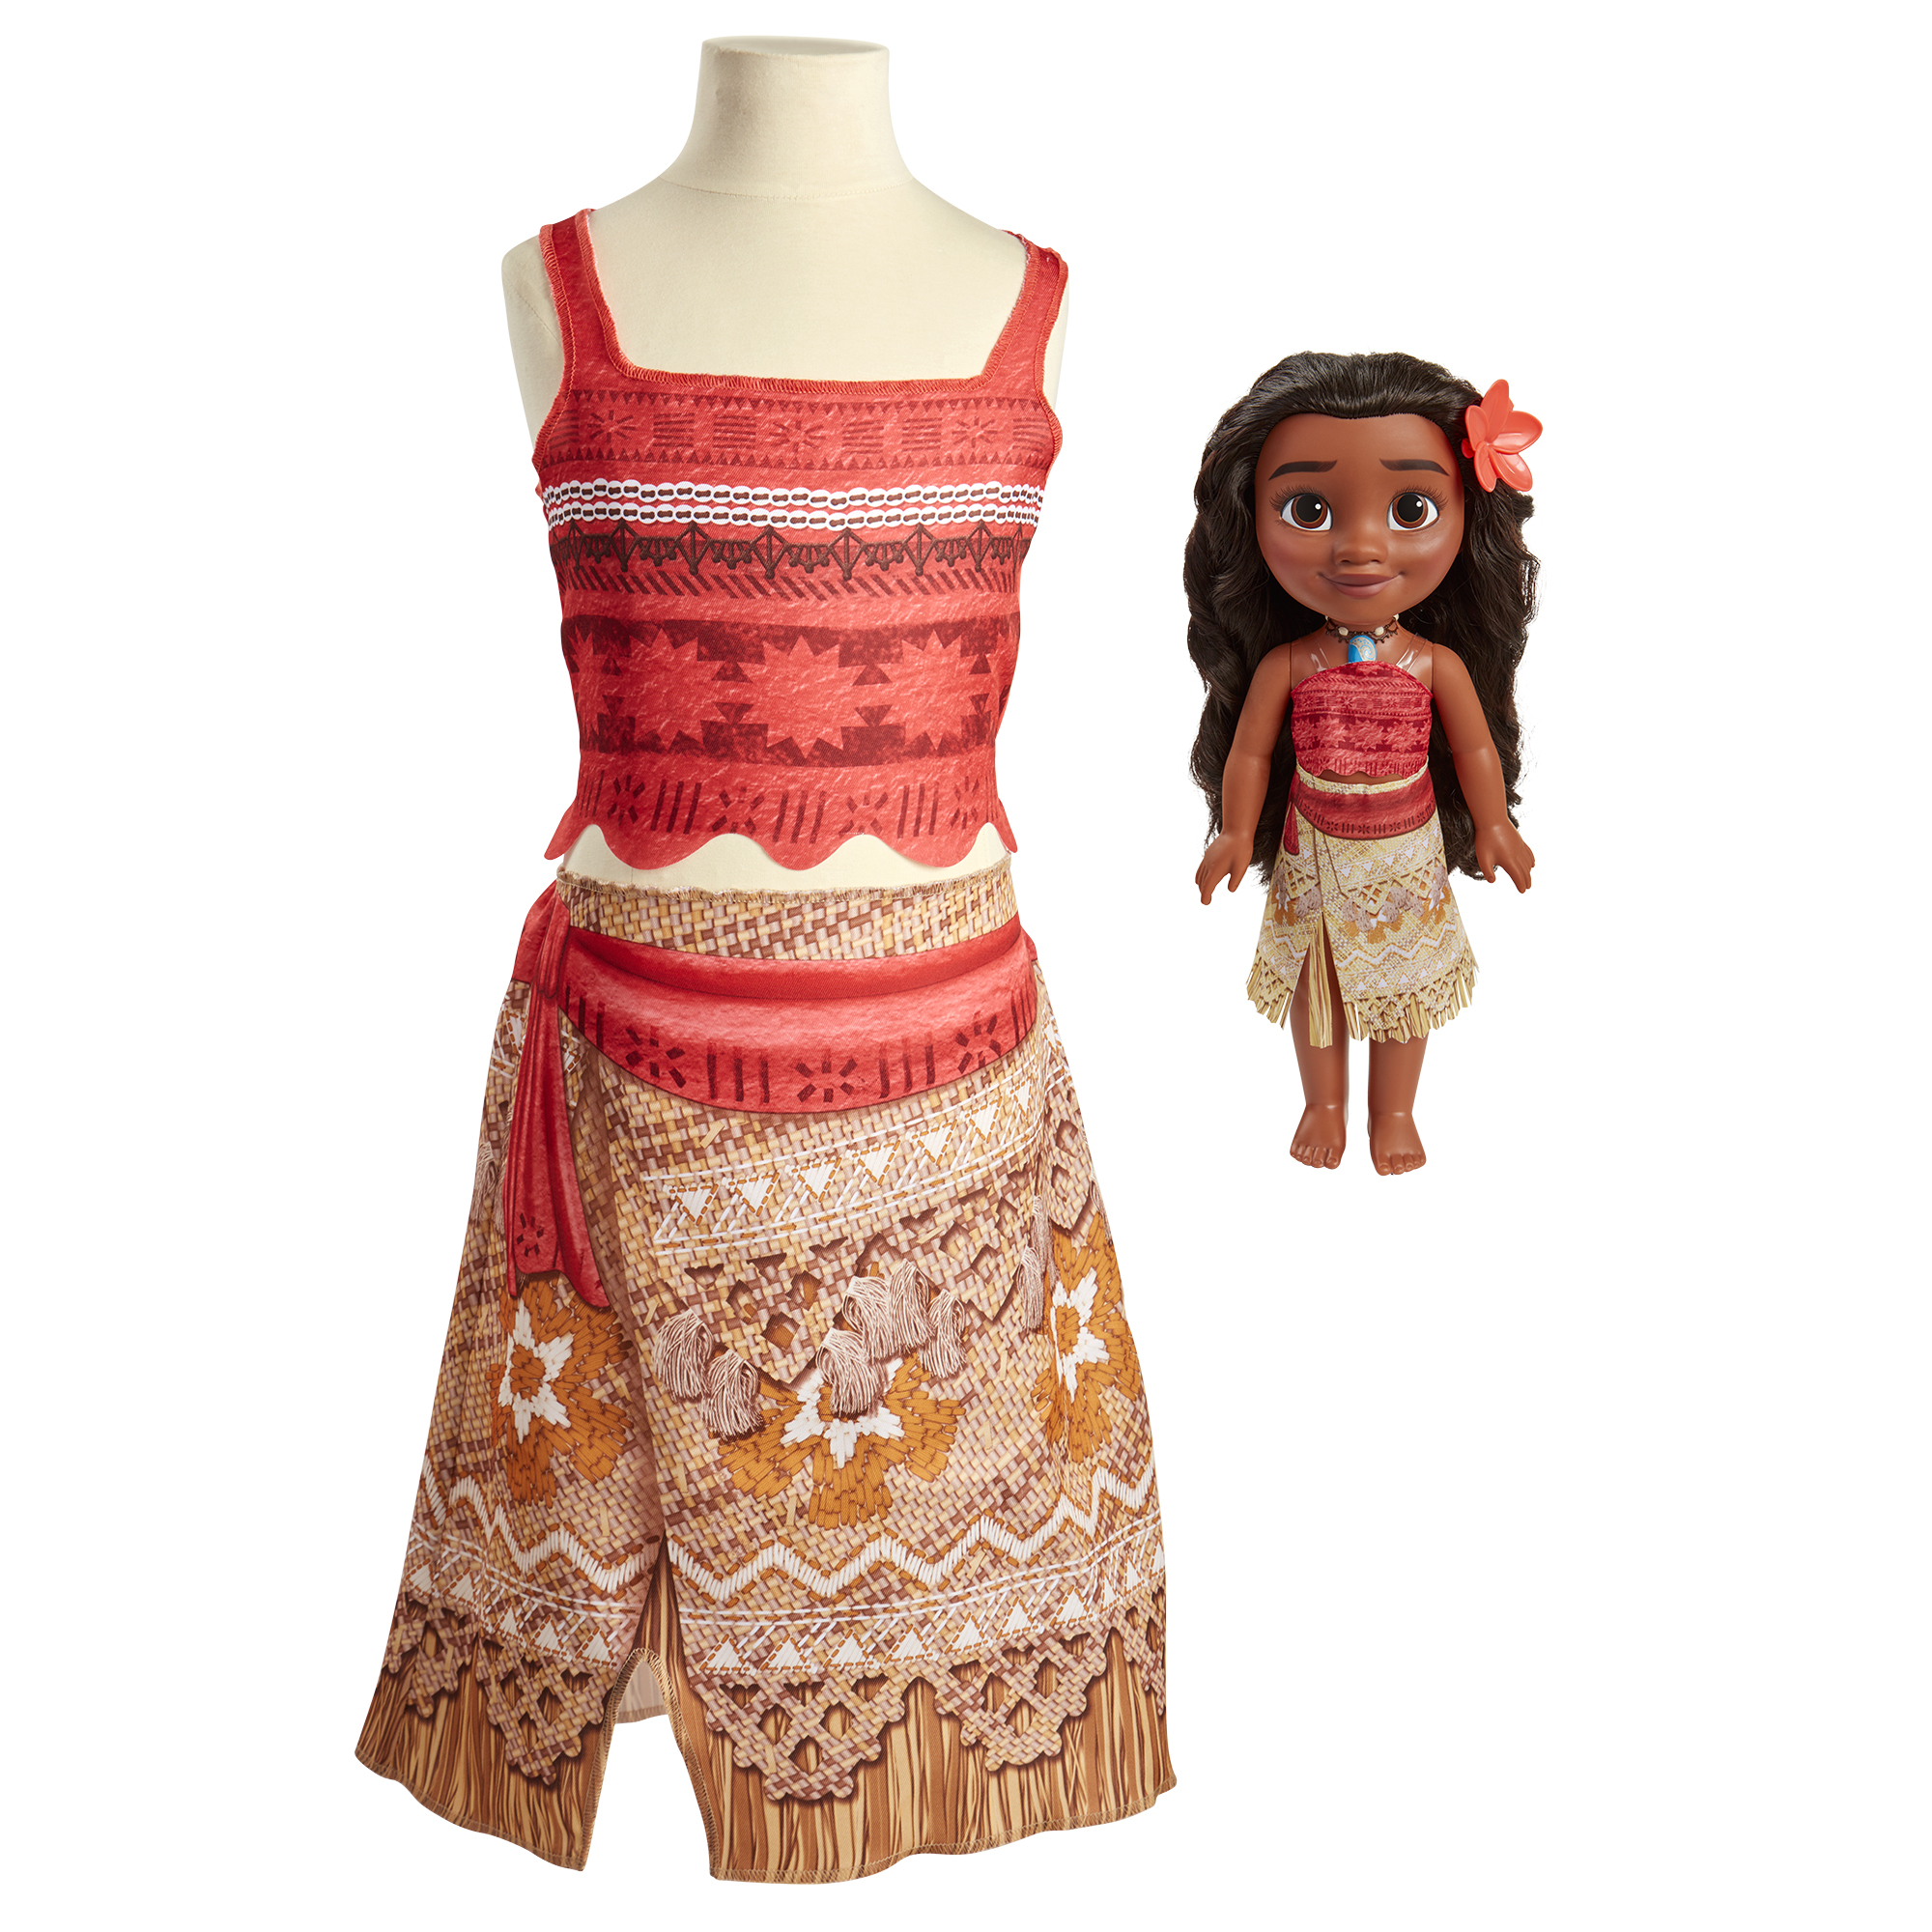 Disney Princess Moana Toddler Doll and Dress